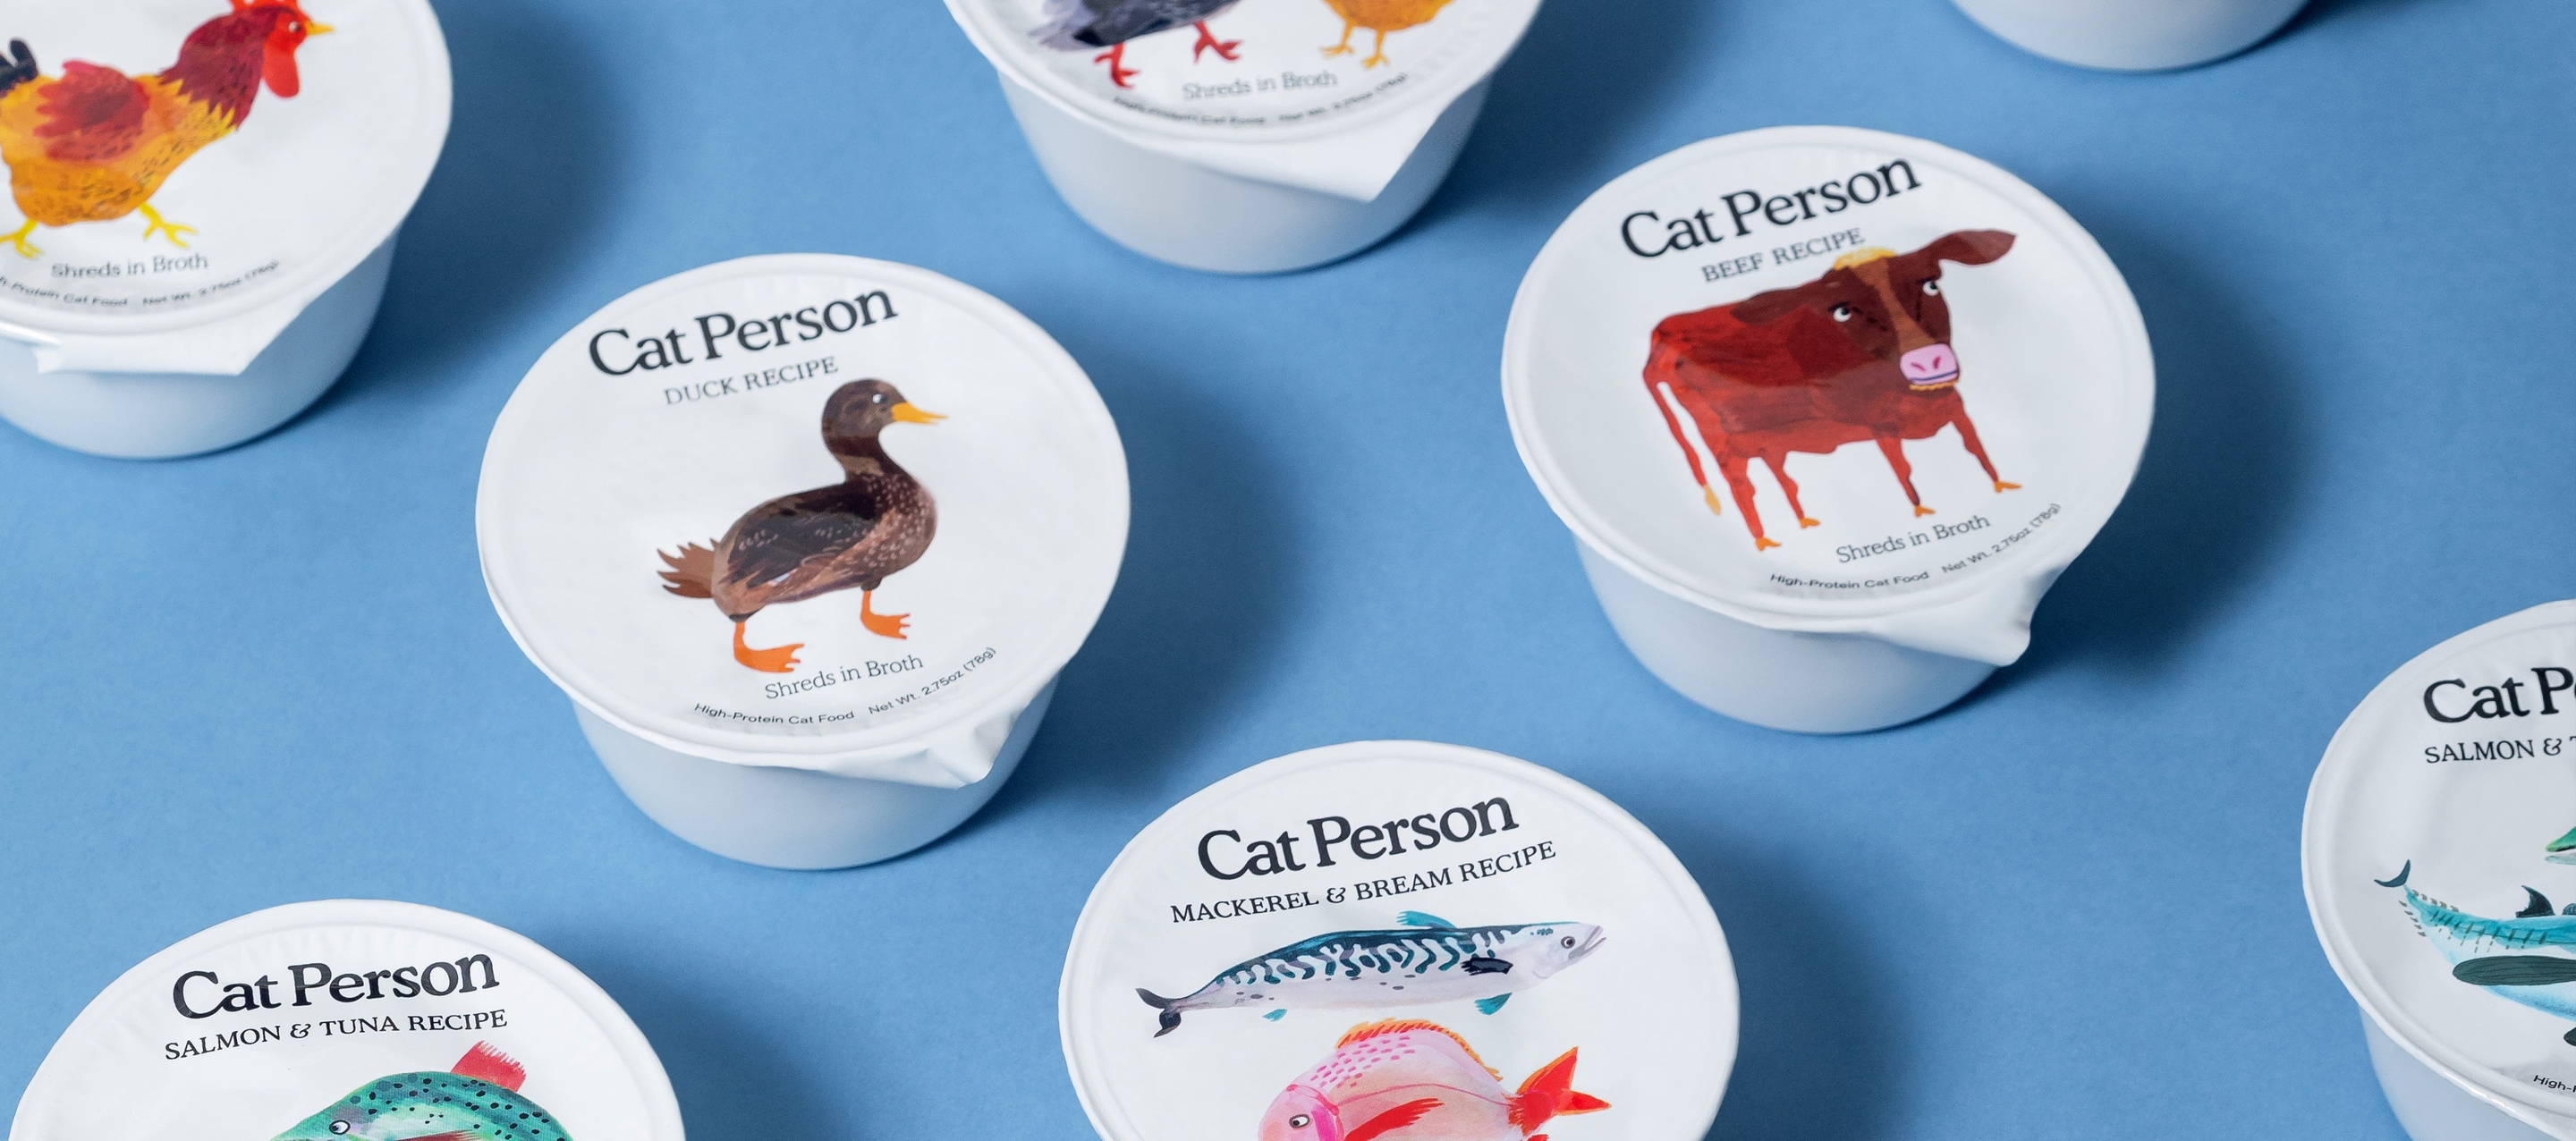 Cups of Cat Person wet cat food